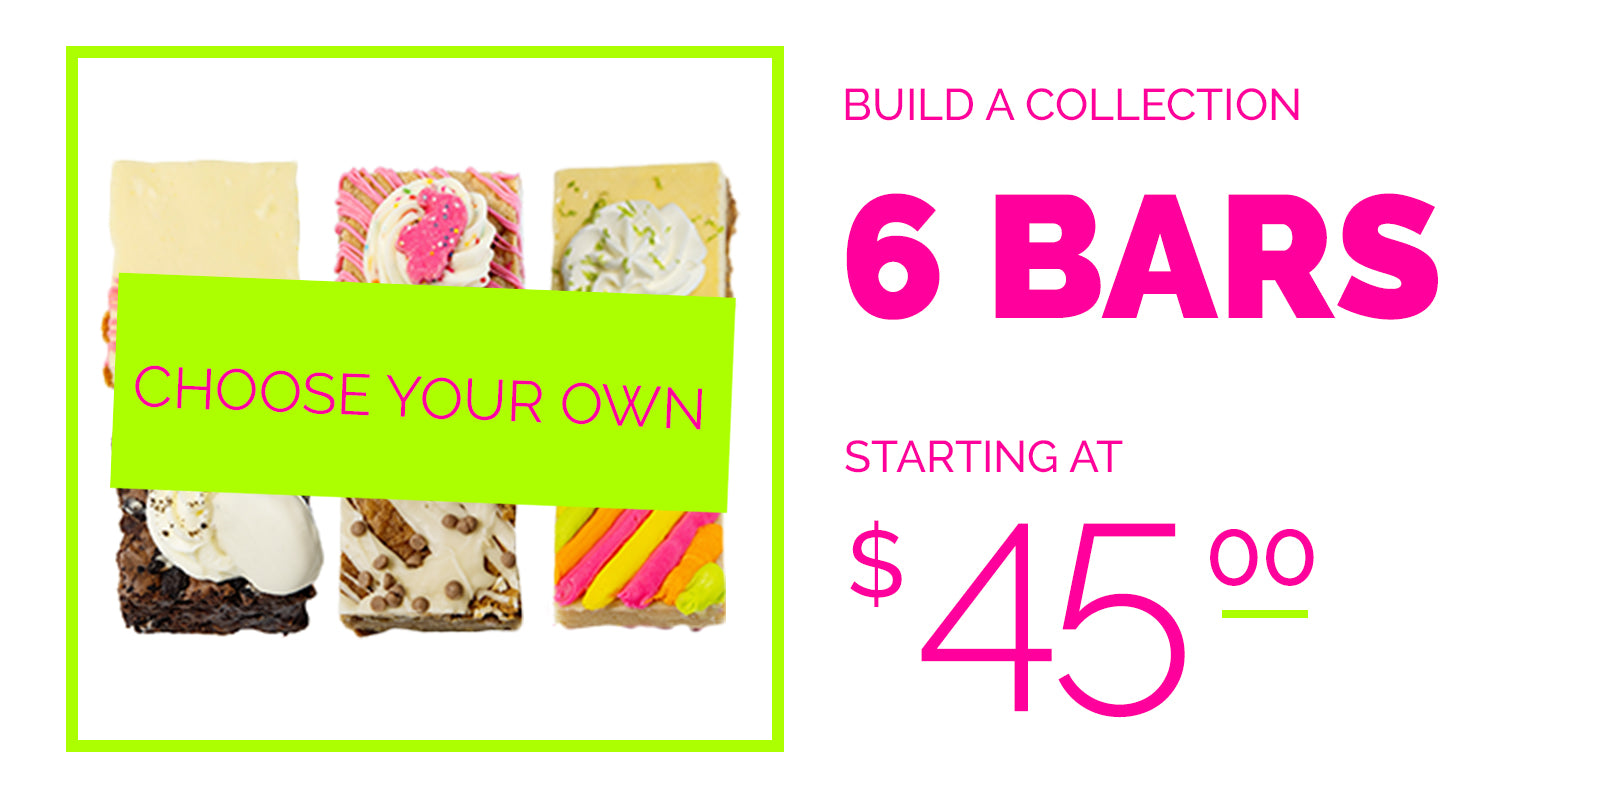 Choose your own, 6 bars starting at $30